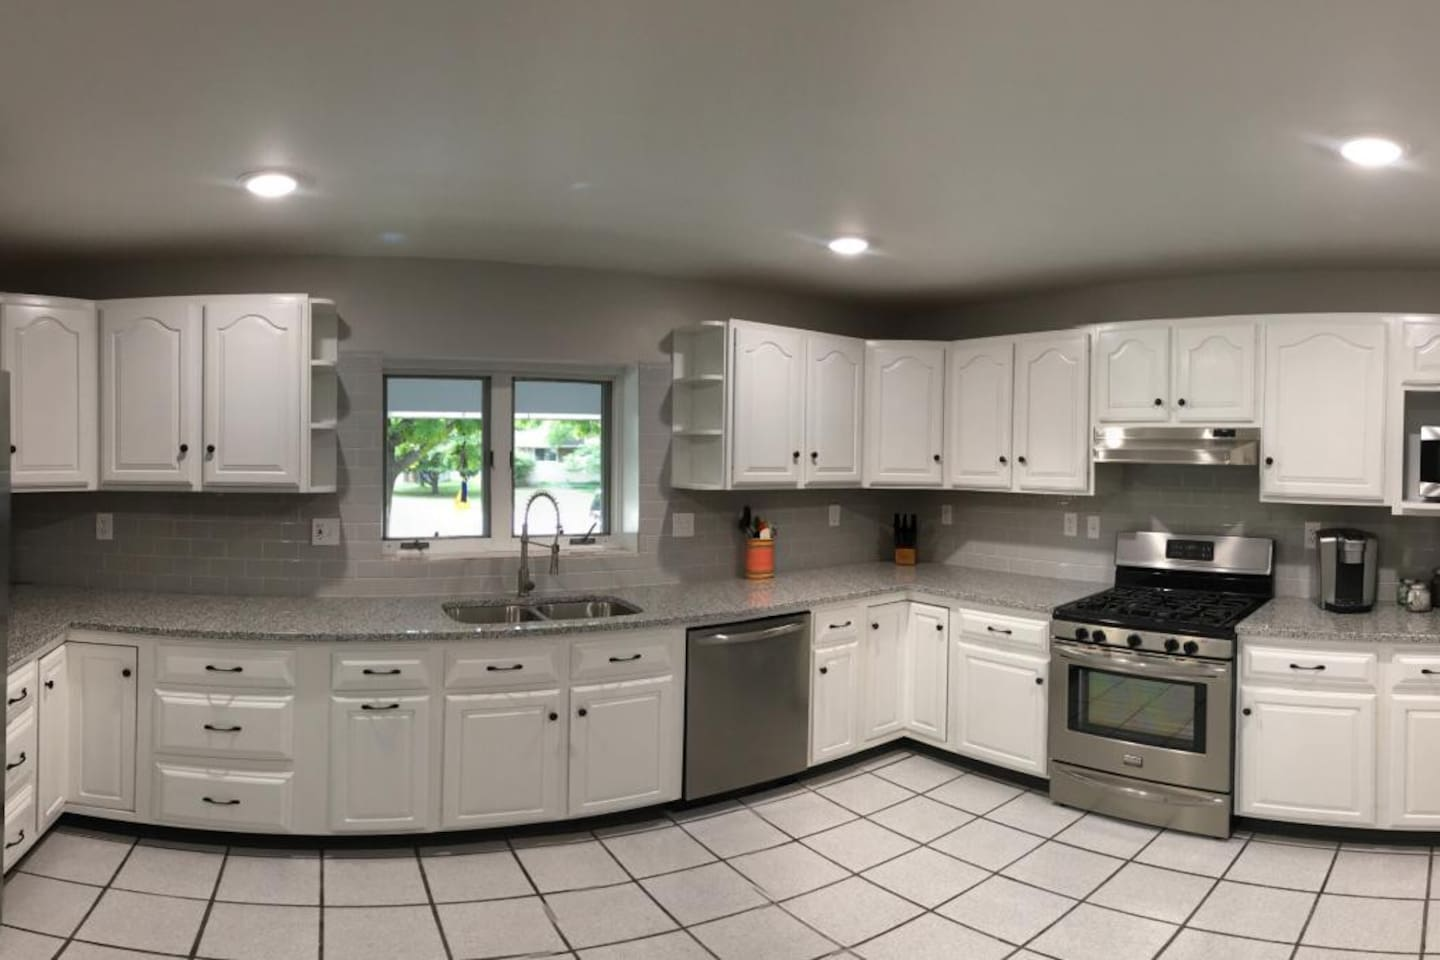 Spacious and well appointed kitchen